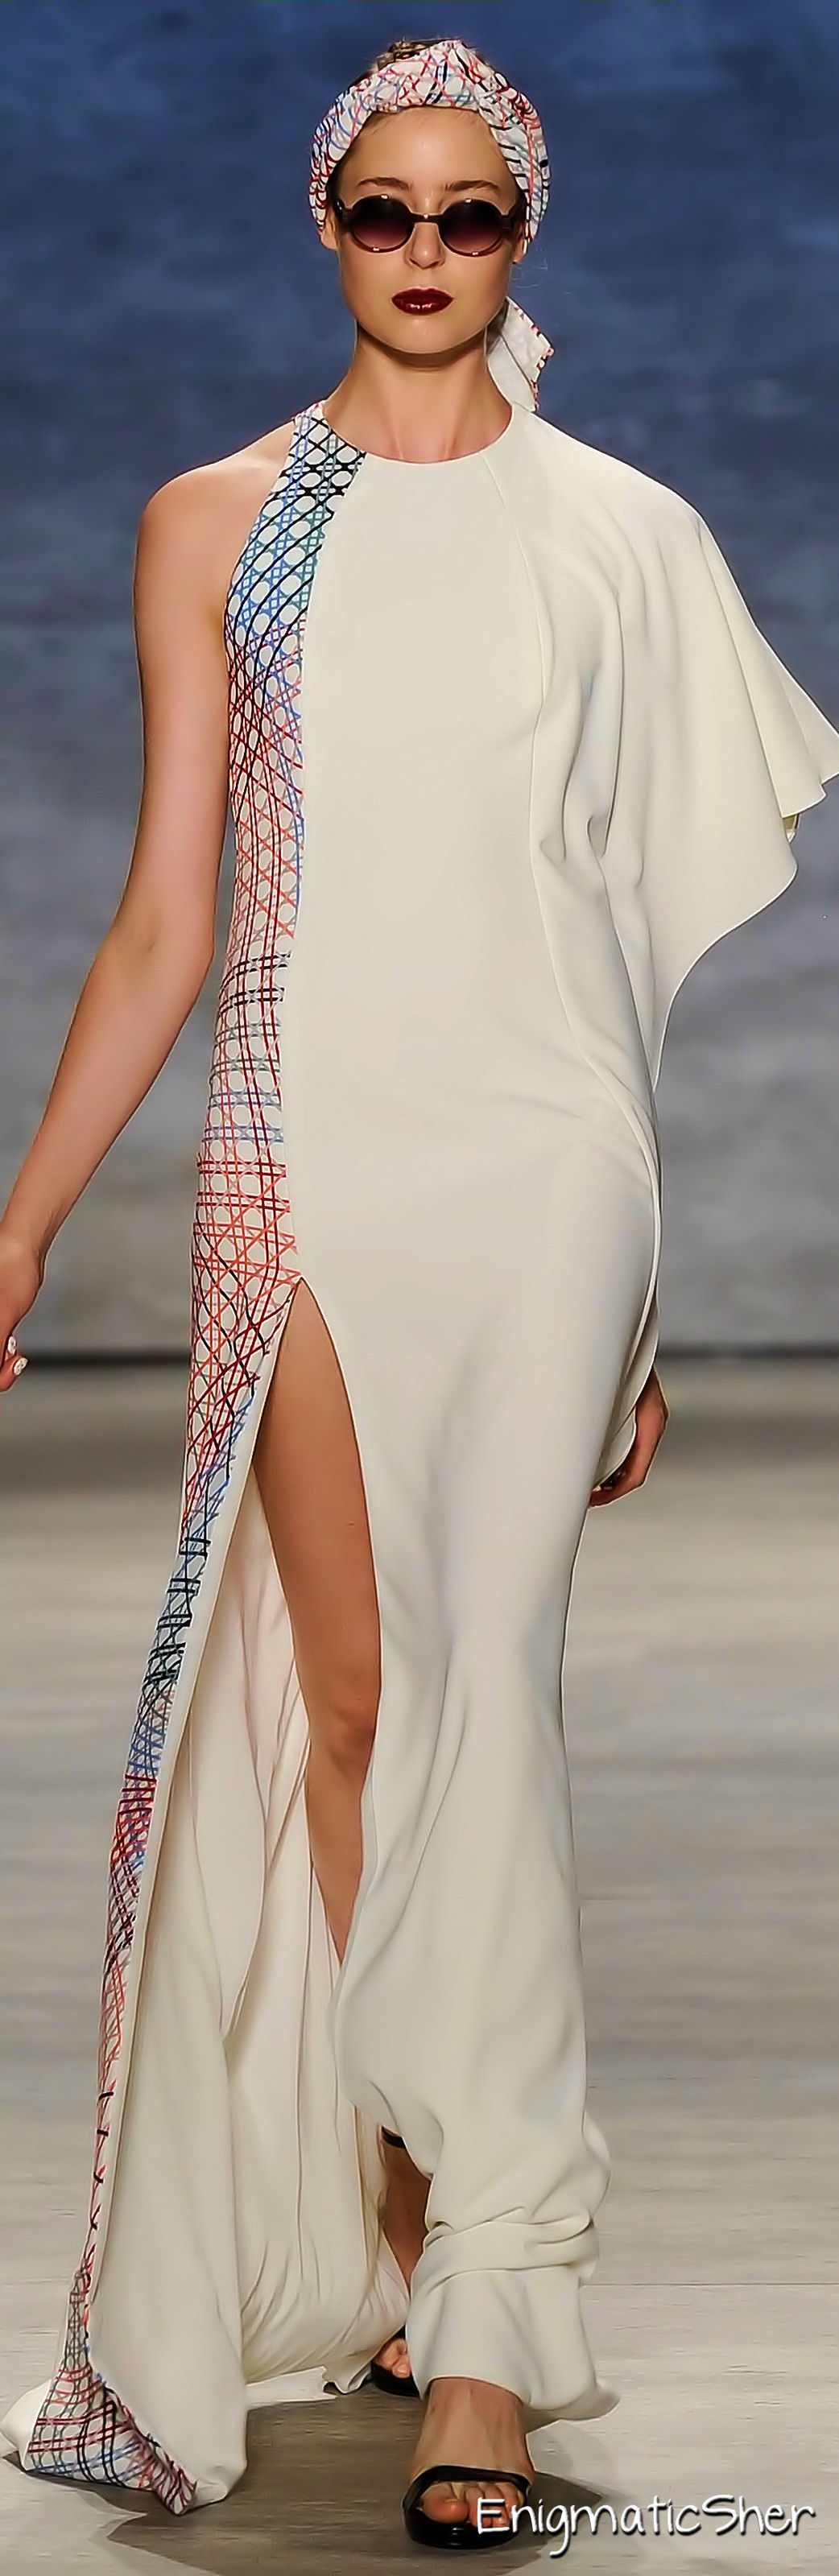 Bibhu Mohapatra Spring Summer 2015 Ready-To-Wear